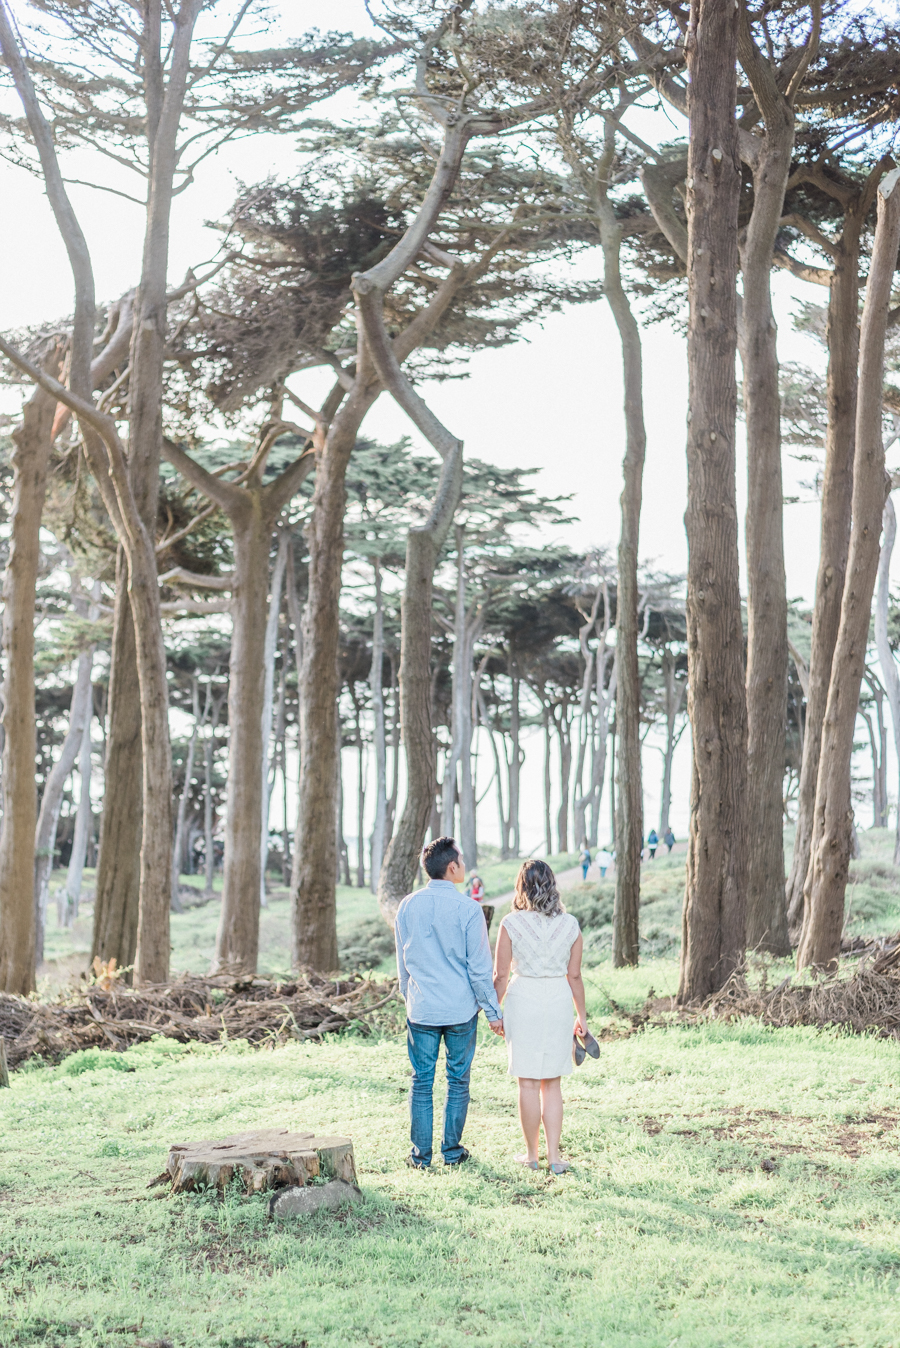 Epiphany Photography Fanny Huynh- San Francisco Engagement Session-11